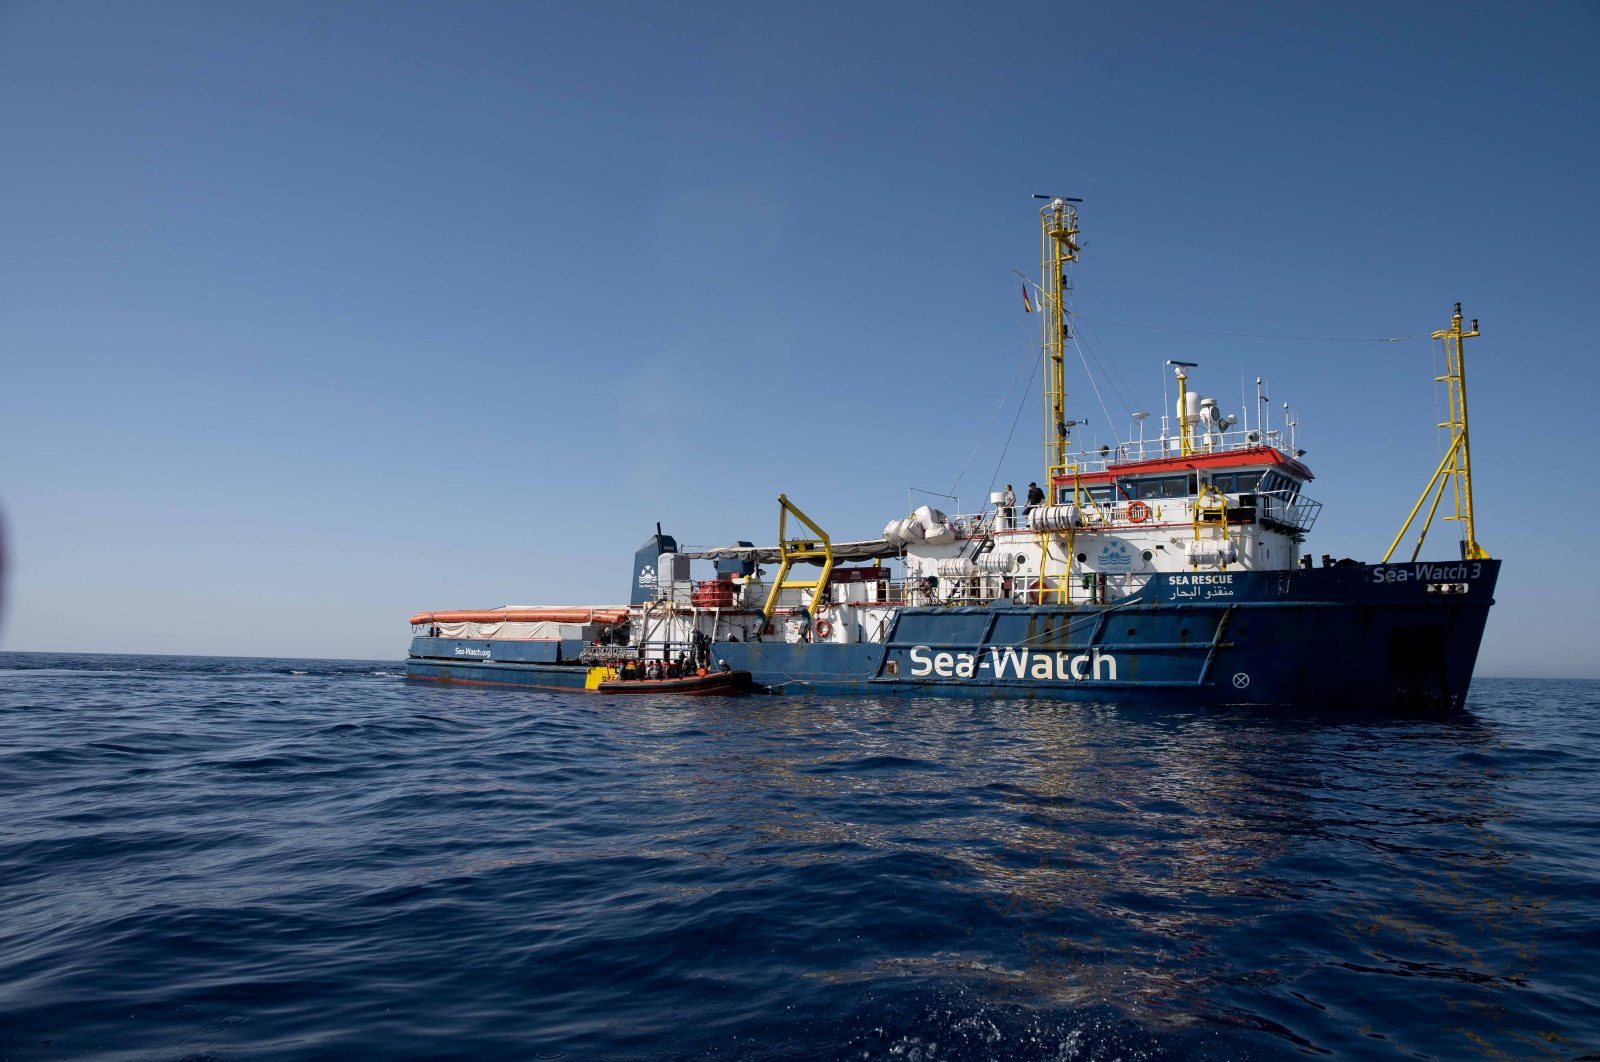 German nongovernmental search and rescue ship Sea-Watch 3 is seen at sea during a search and rescue (SAR) operation in the Mediterranean Sea, off the Libyan coast, June 17, 2020. (Sea Watch / Handout via Reuters)